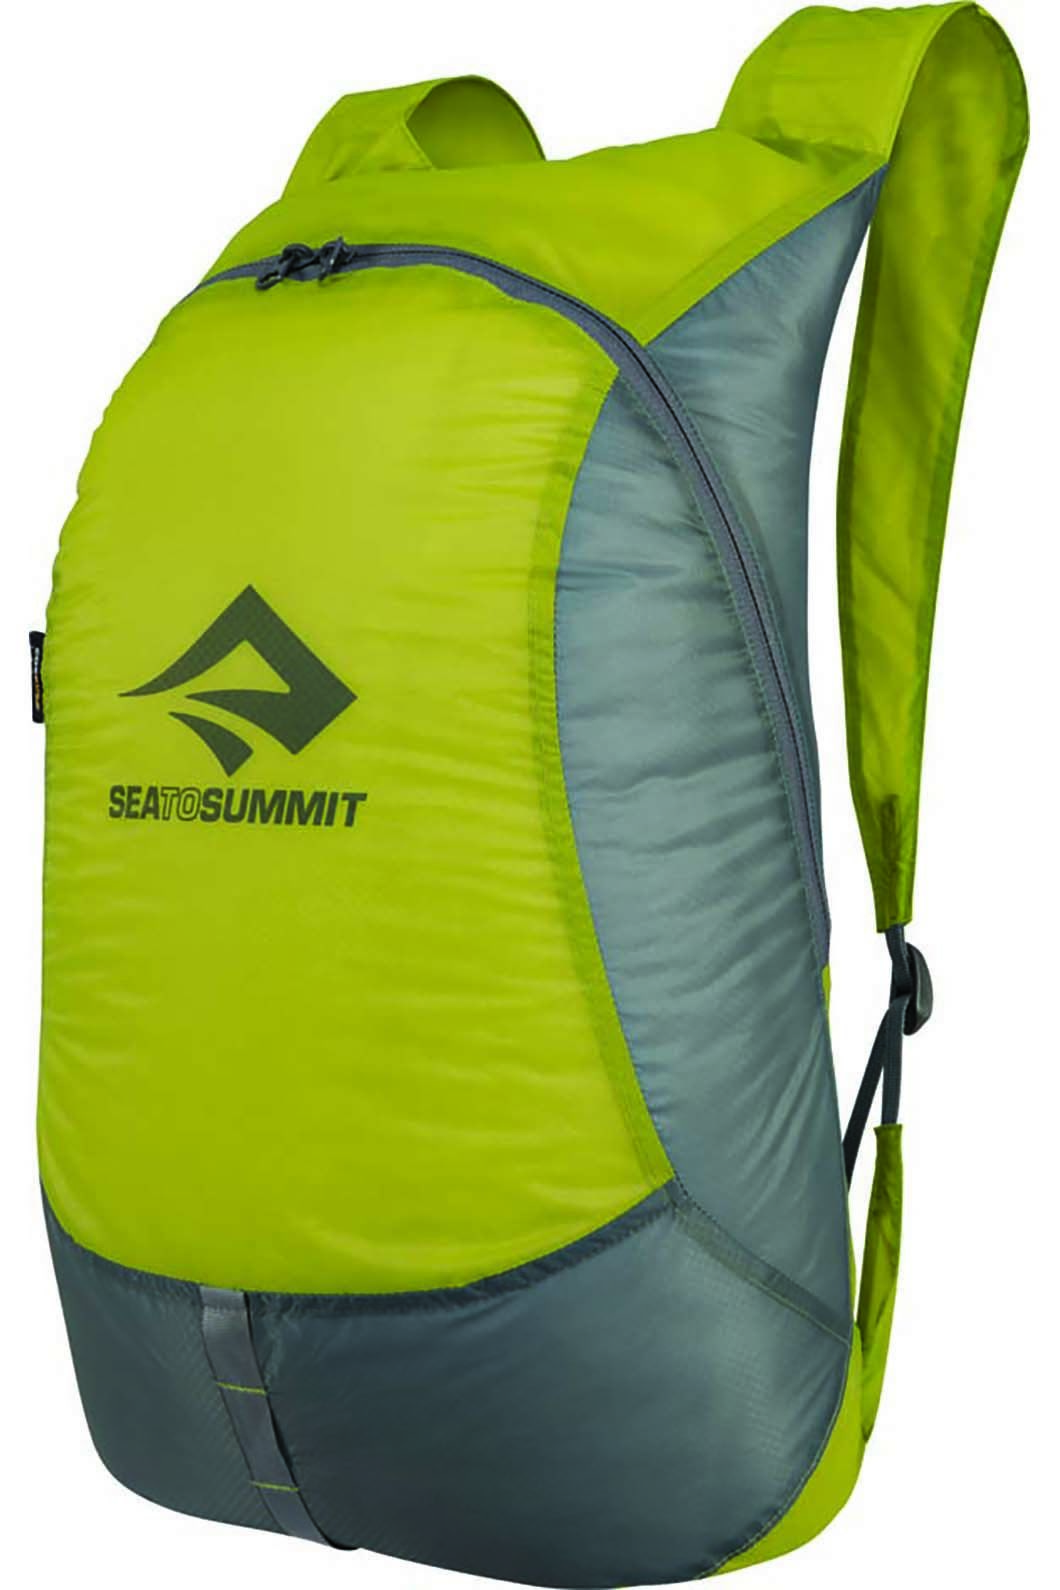 Sea to Summit Ultra-Sil Daypack 20L, Lime, hi-res